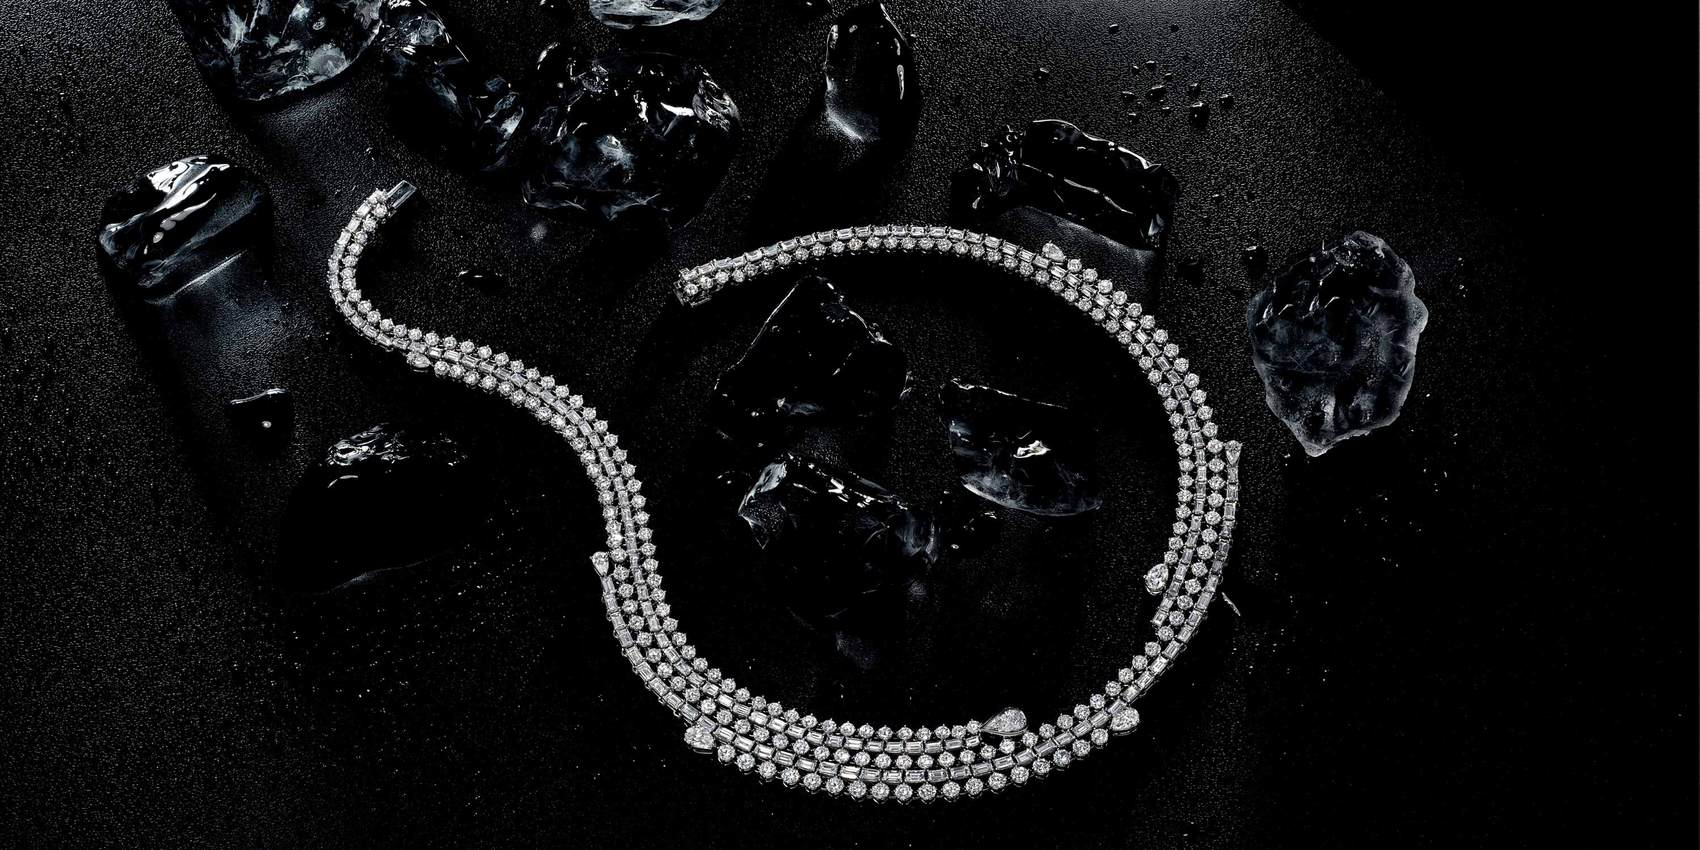 Storm diamond necklace from Iced Zeit collection by Stenzhorn